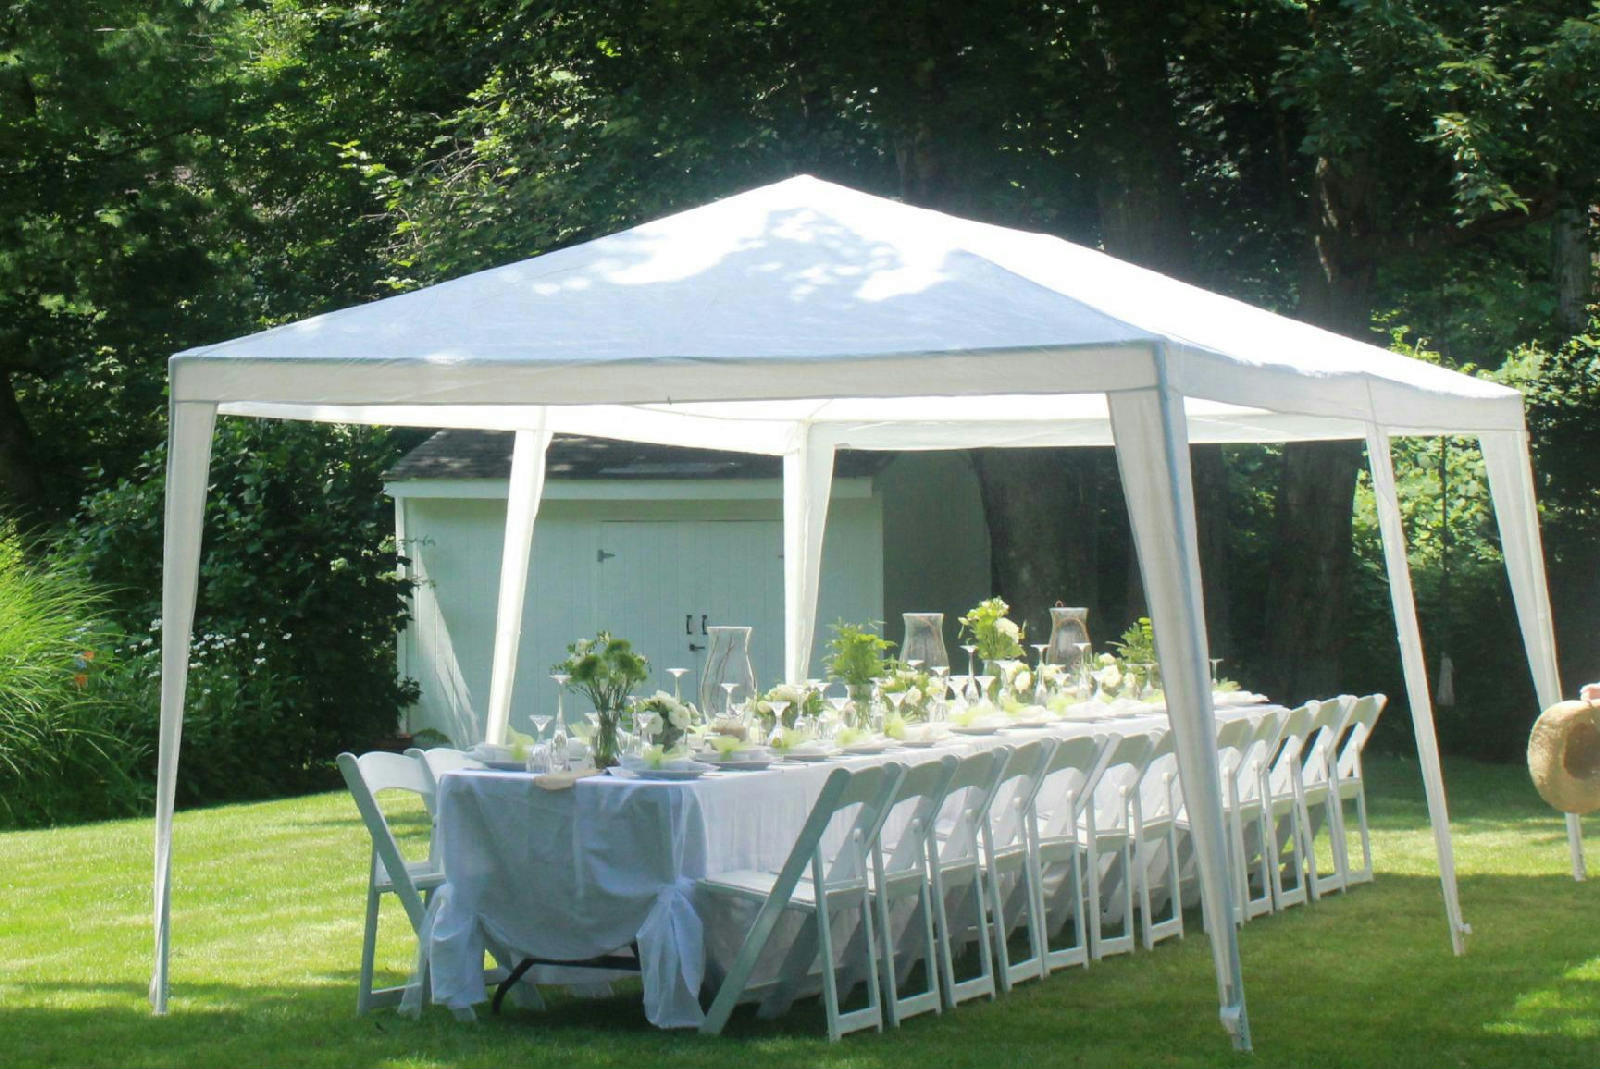 Quictent 10 x 20 outdoor heavy duty wedding gazebo party tent canopy w sidewall ebay - Decorating a canopy tent ...